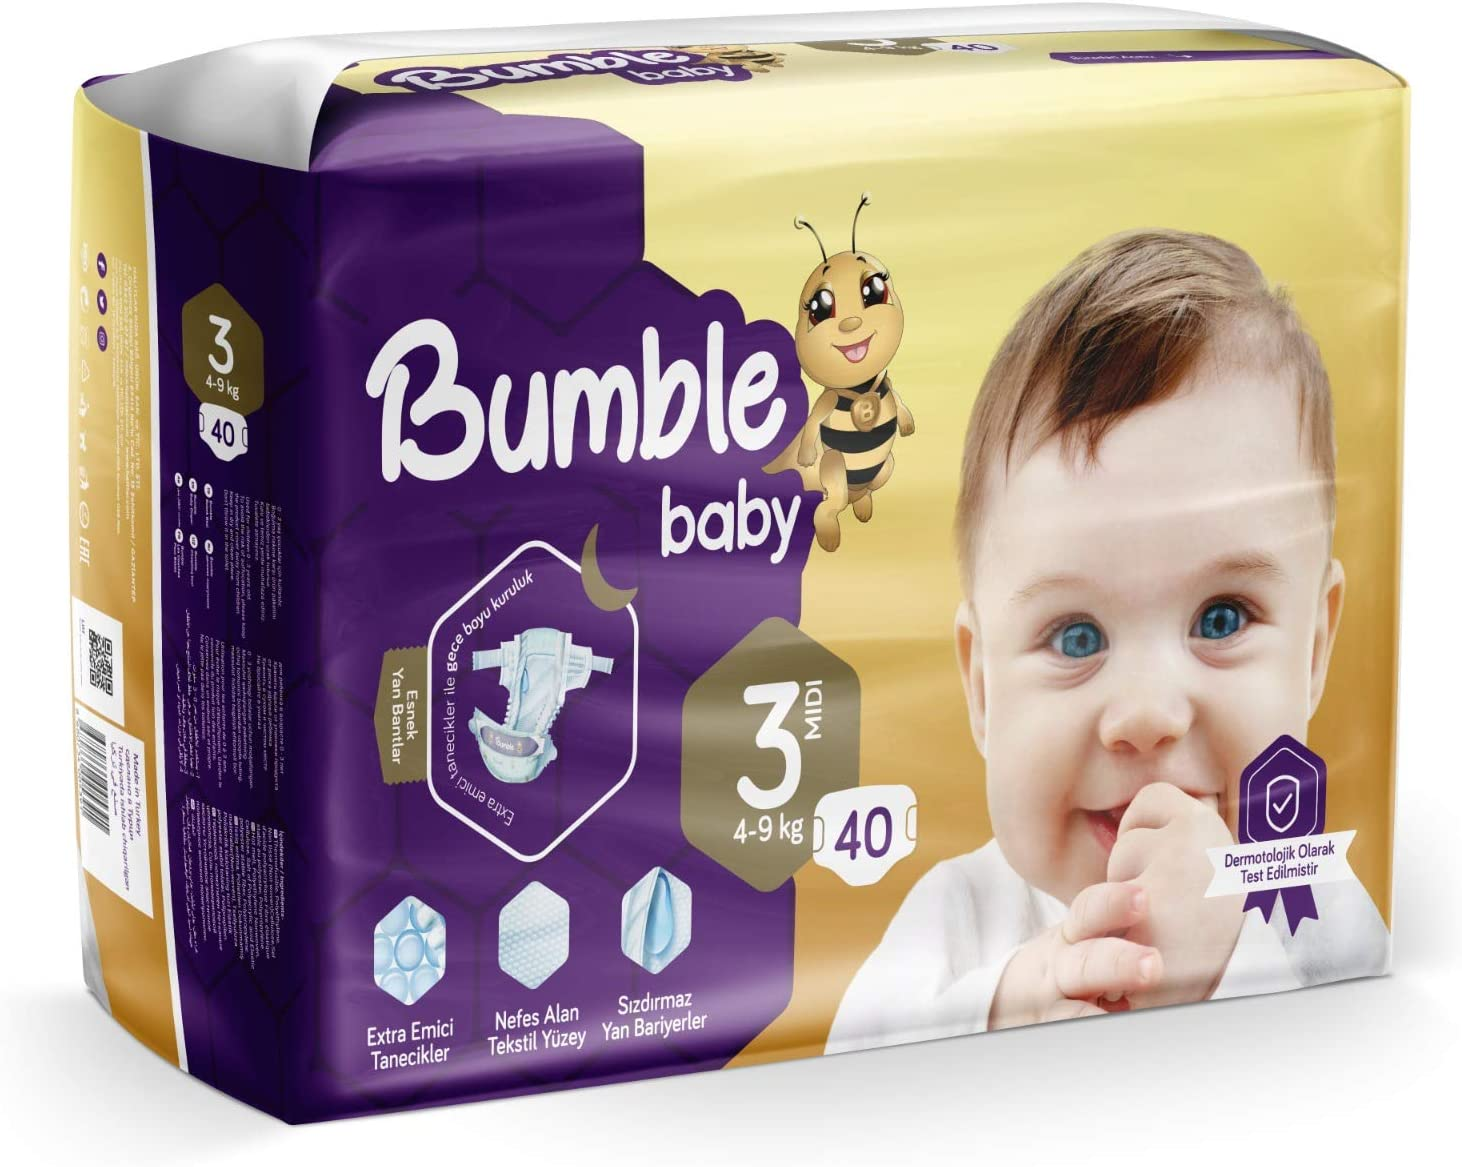 Bumble Baby Diapers, Size 3 4-9KG 40 Counts drip Proof barriers, Textile Surfaces, Absorbing Particles, Ultra-Flexible Side Grip Strips (3)